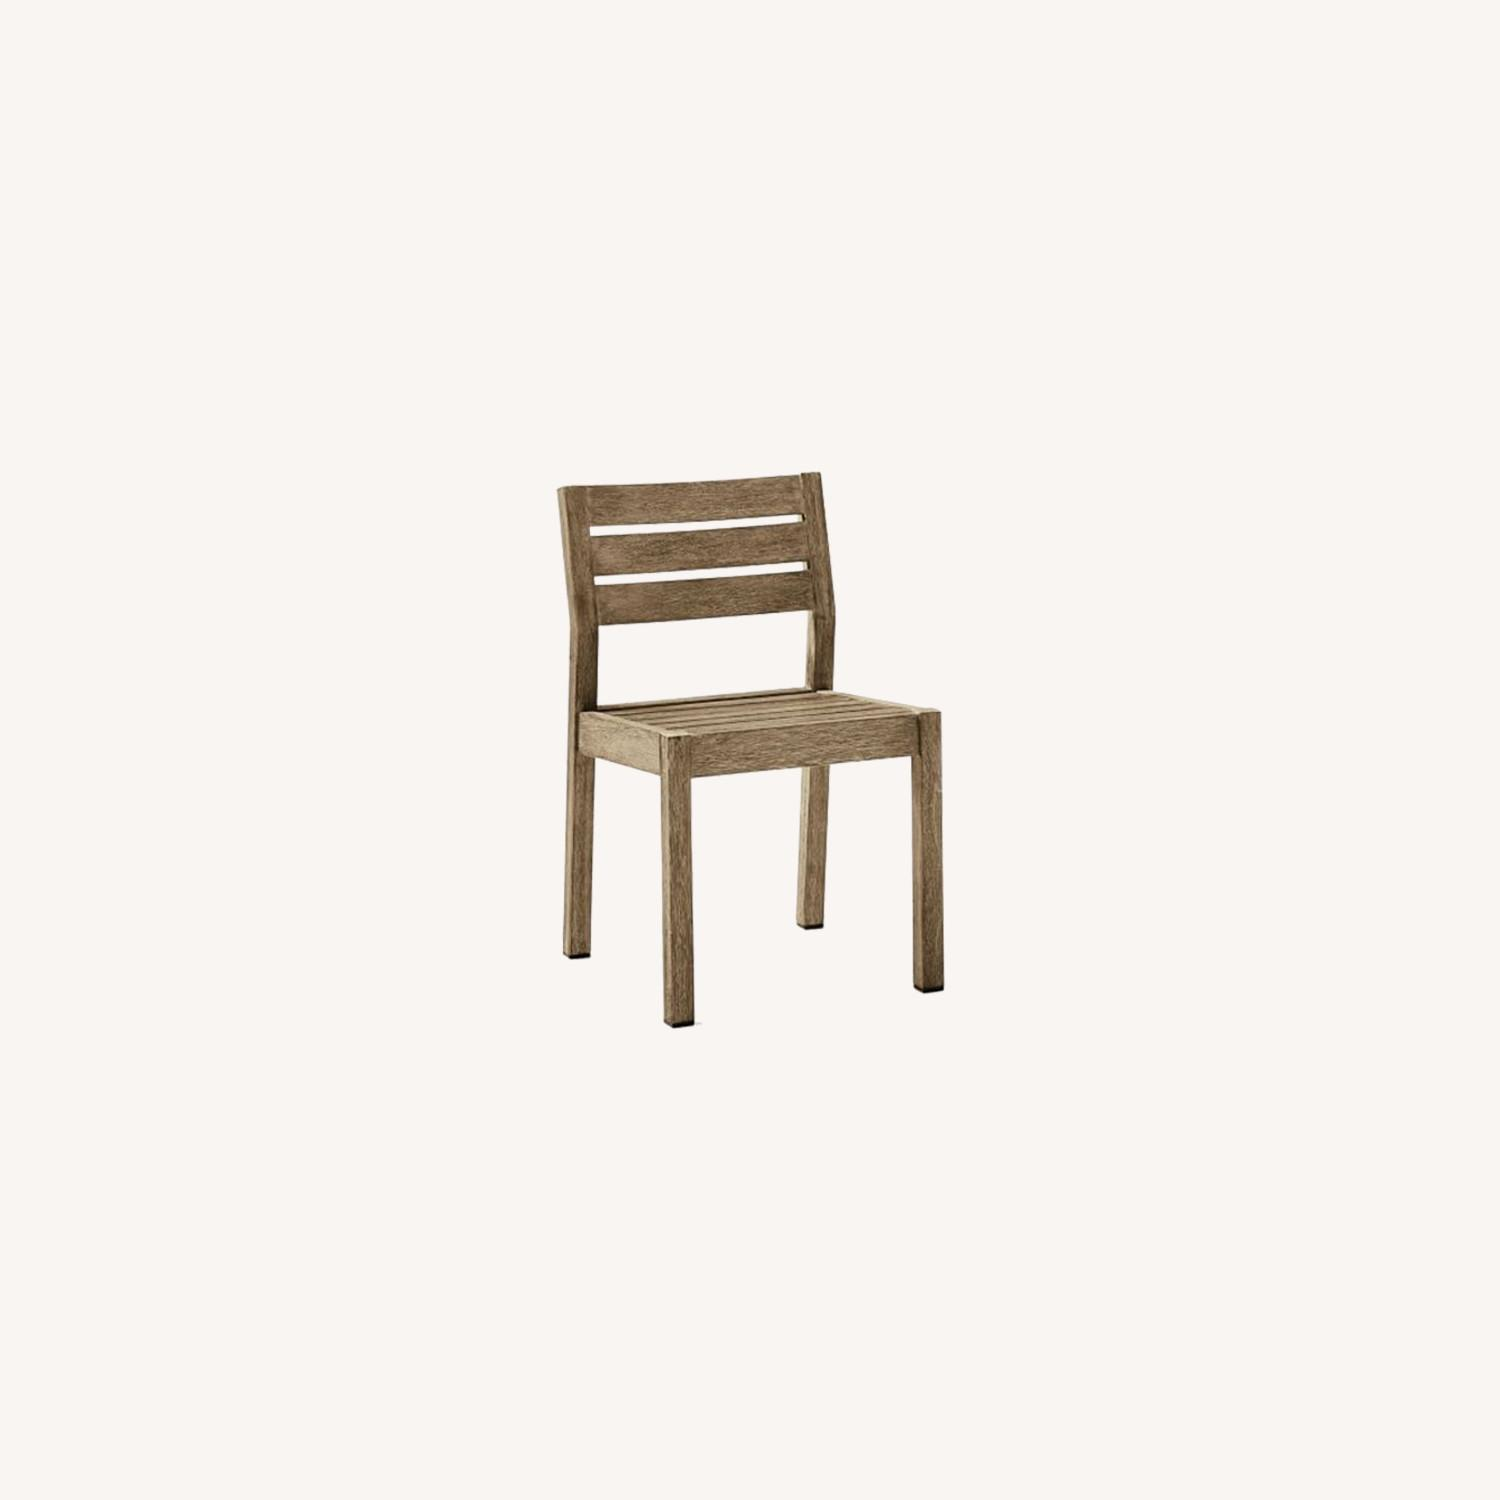 West Elm Portside Outdoor Dining Chair, Set of 2 - image-0